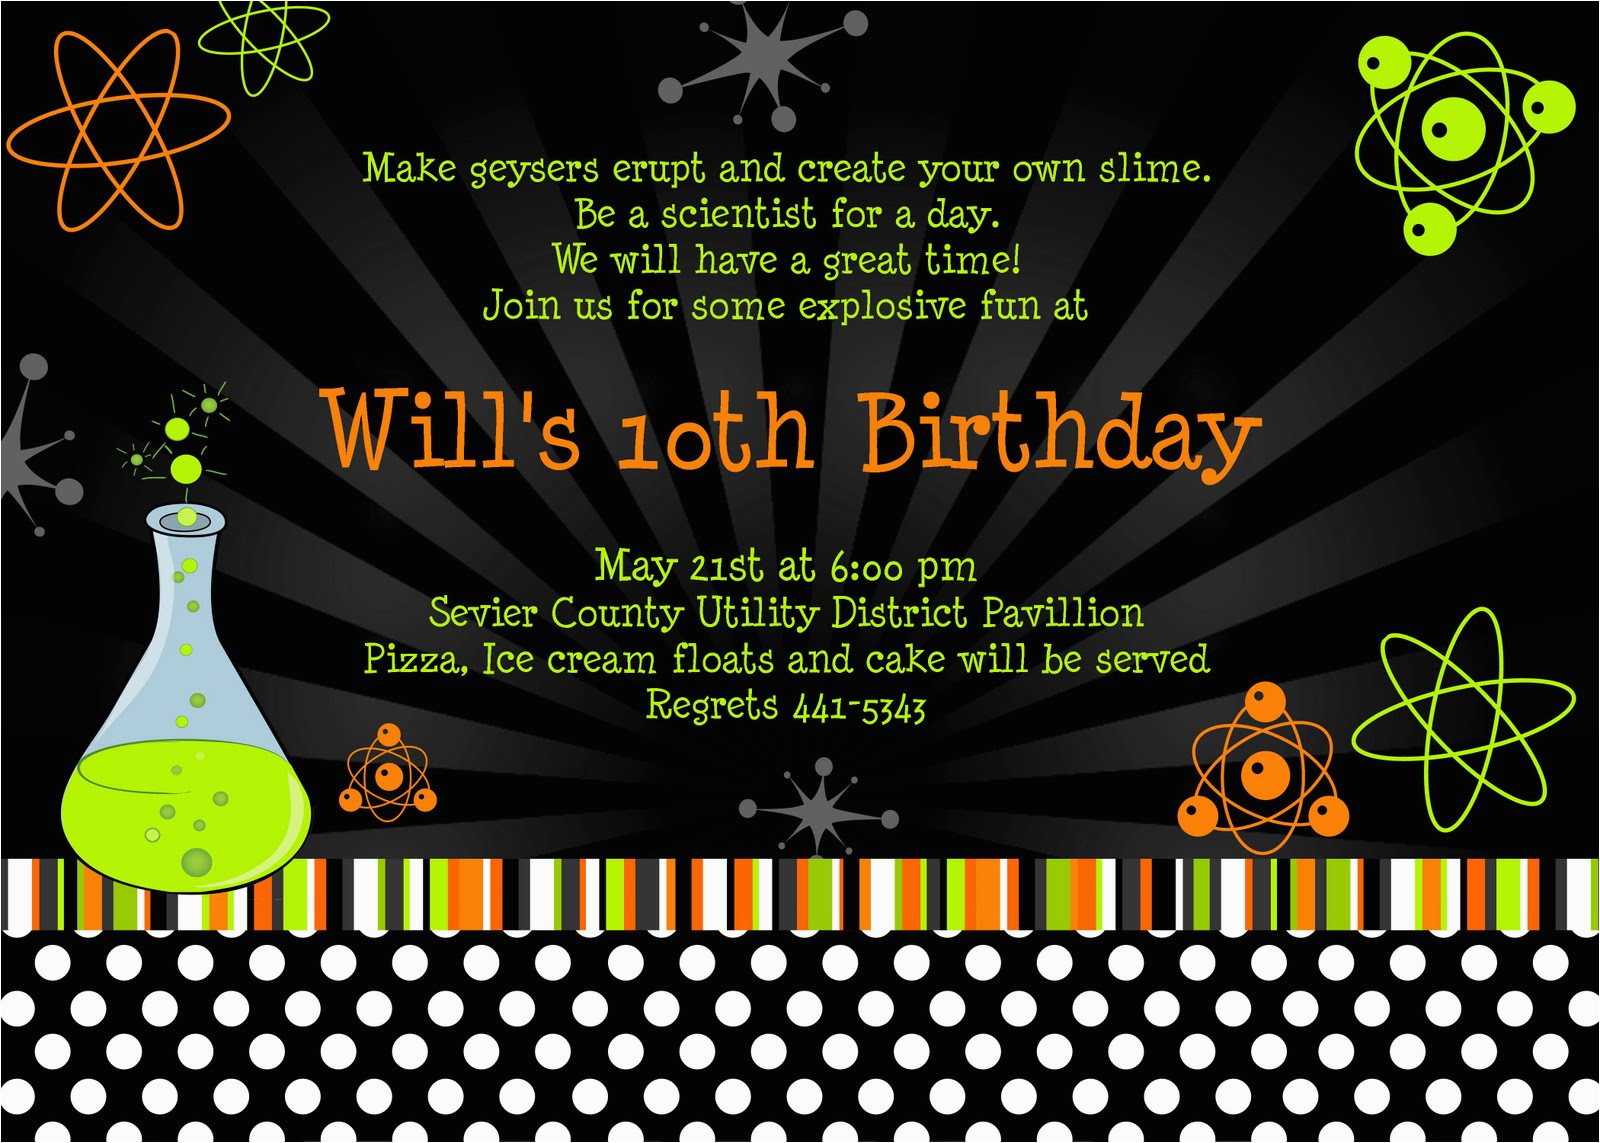 wills 10th birtday